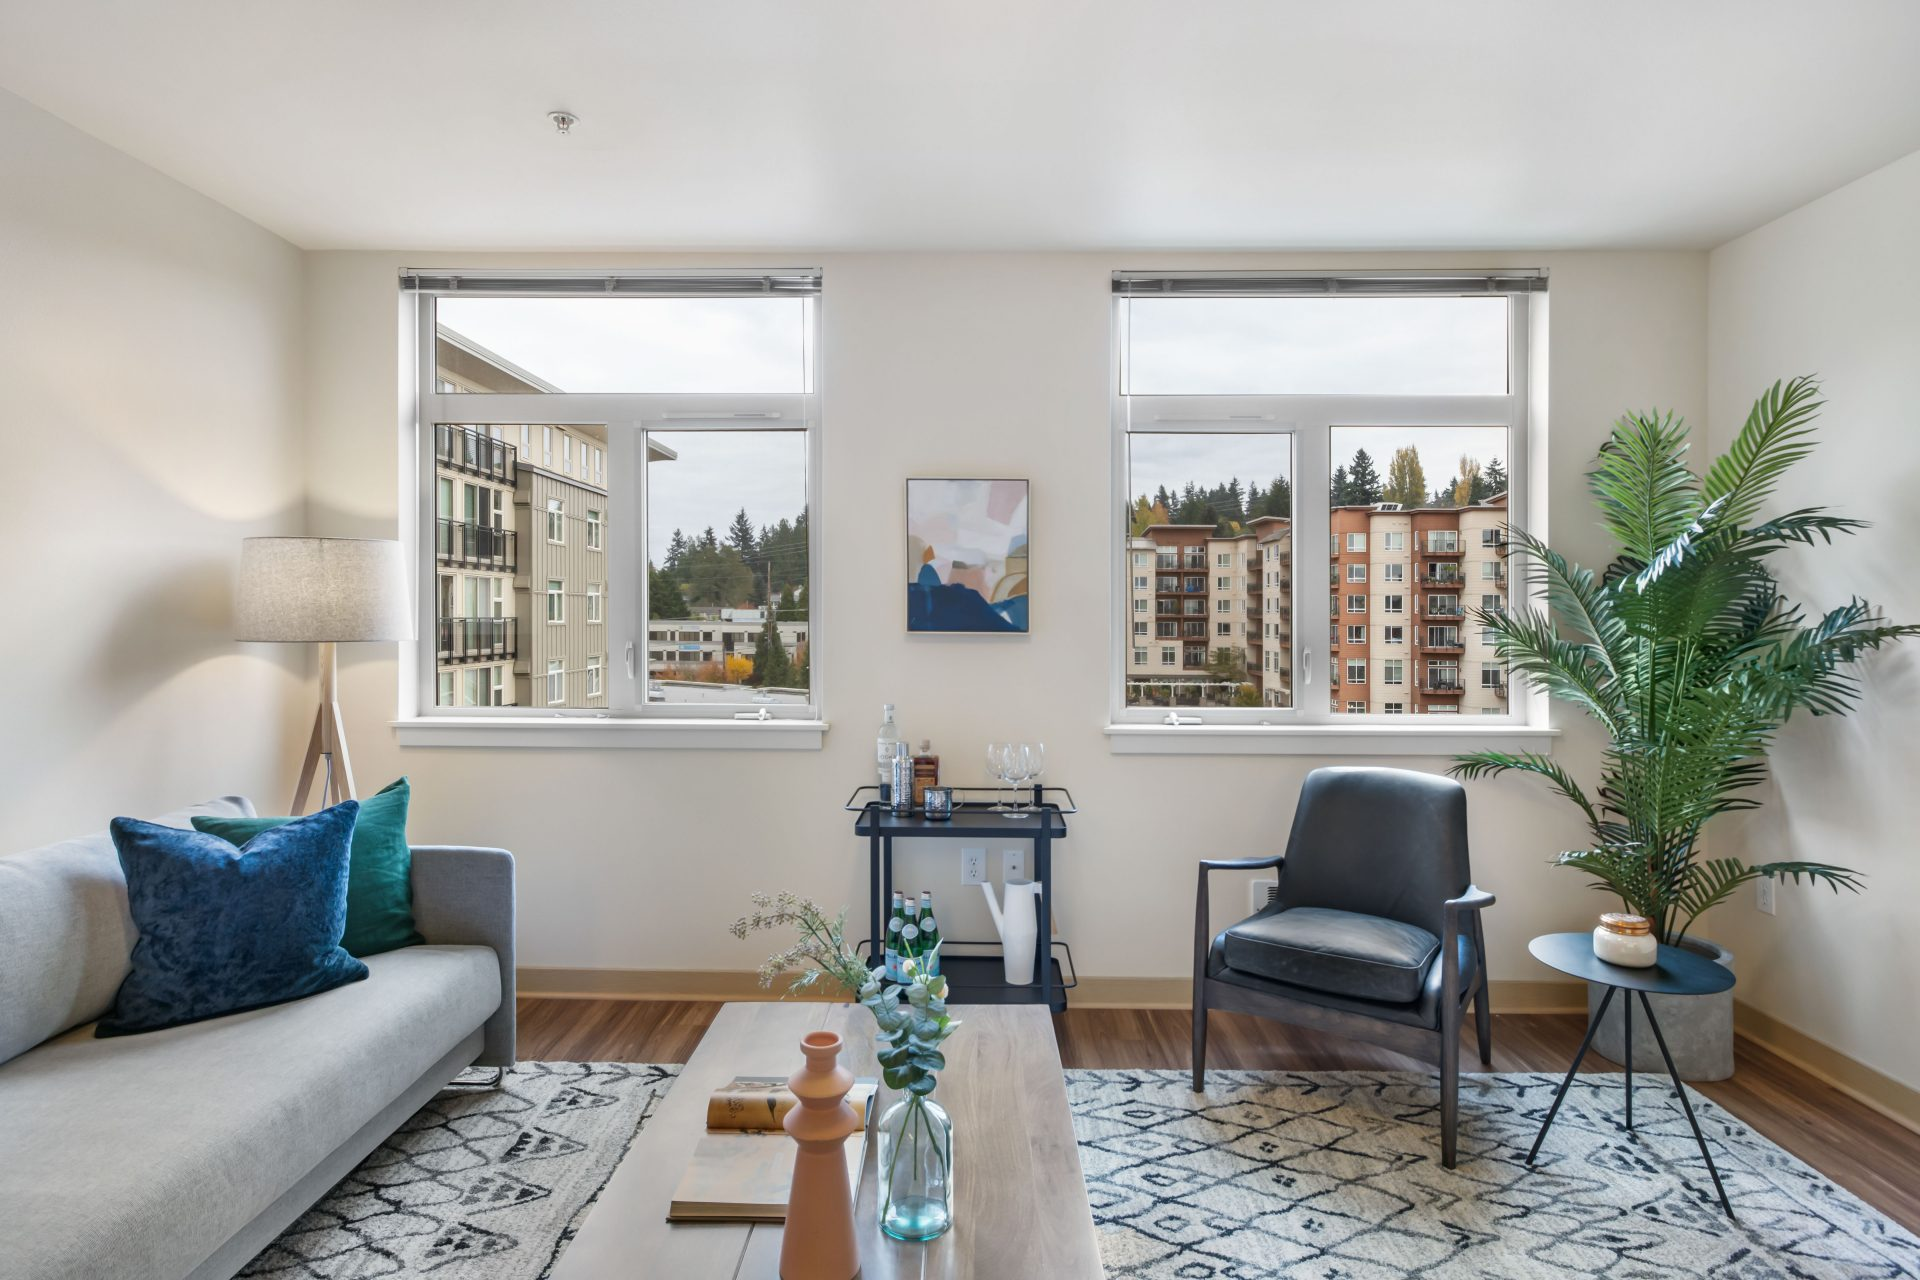 Well lit living space with view of Seattle